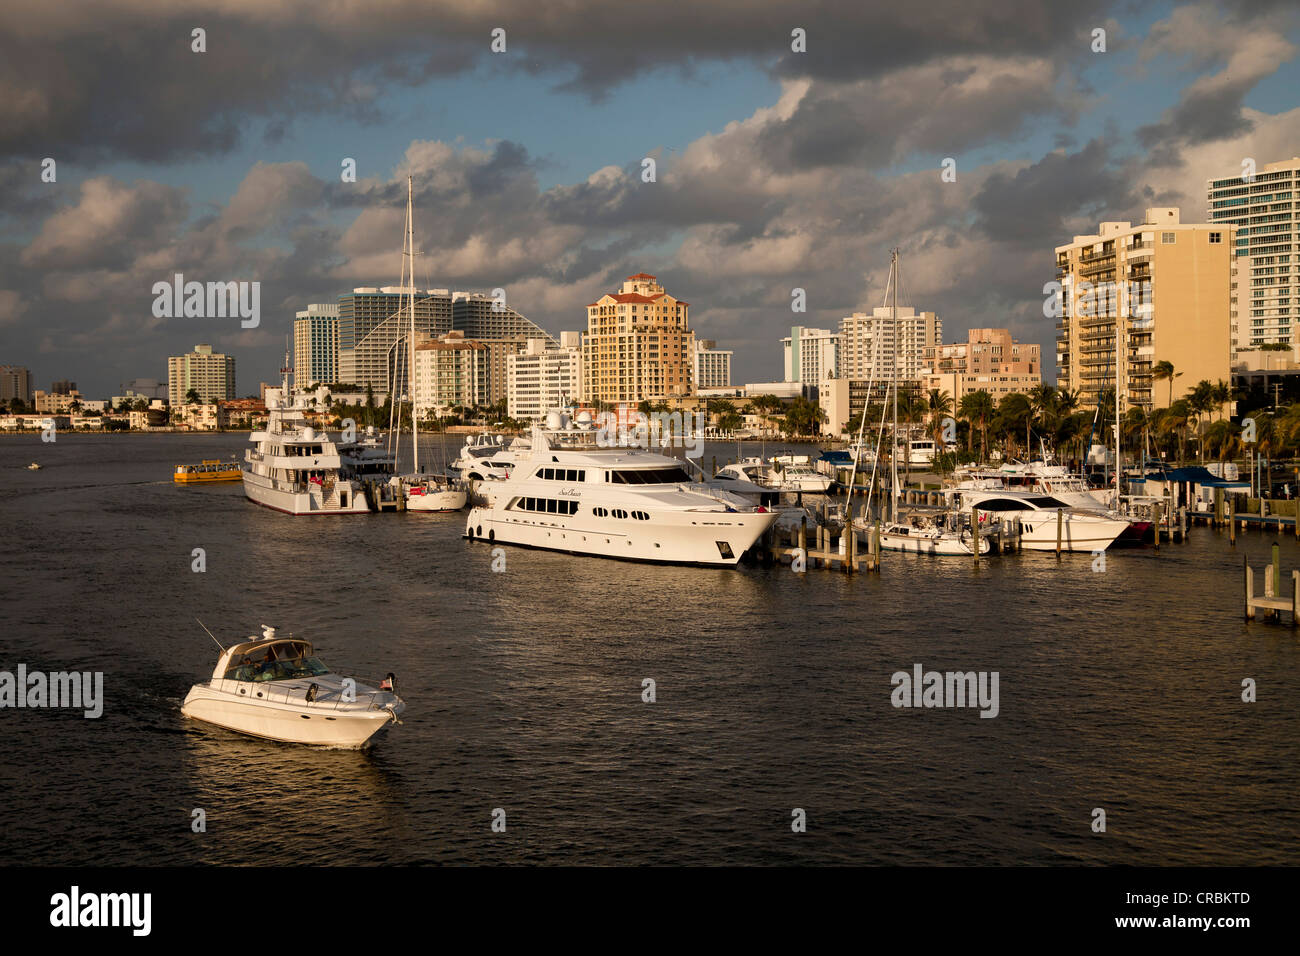 Yachts and canals, Fort Lauderdale, Broward County, Florida, USA - Stock Image